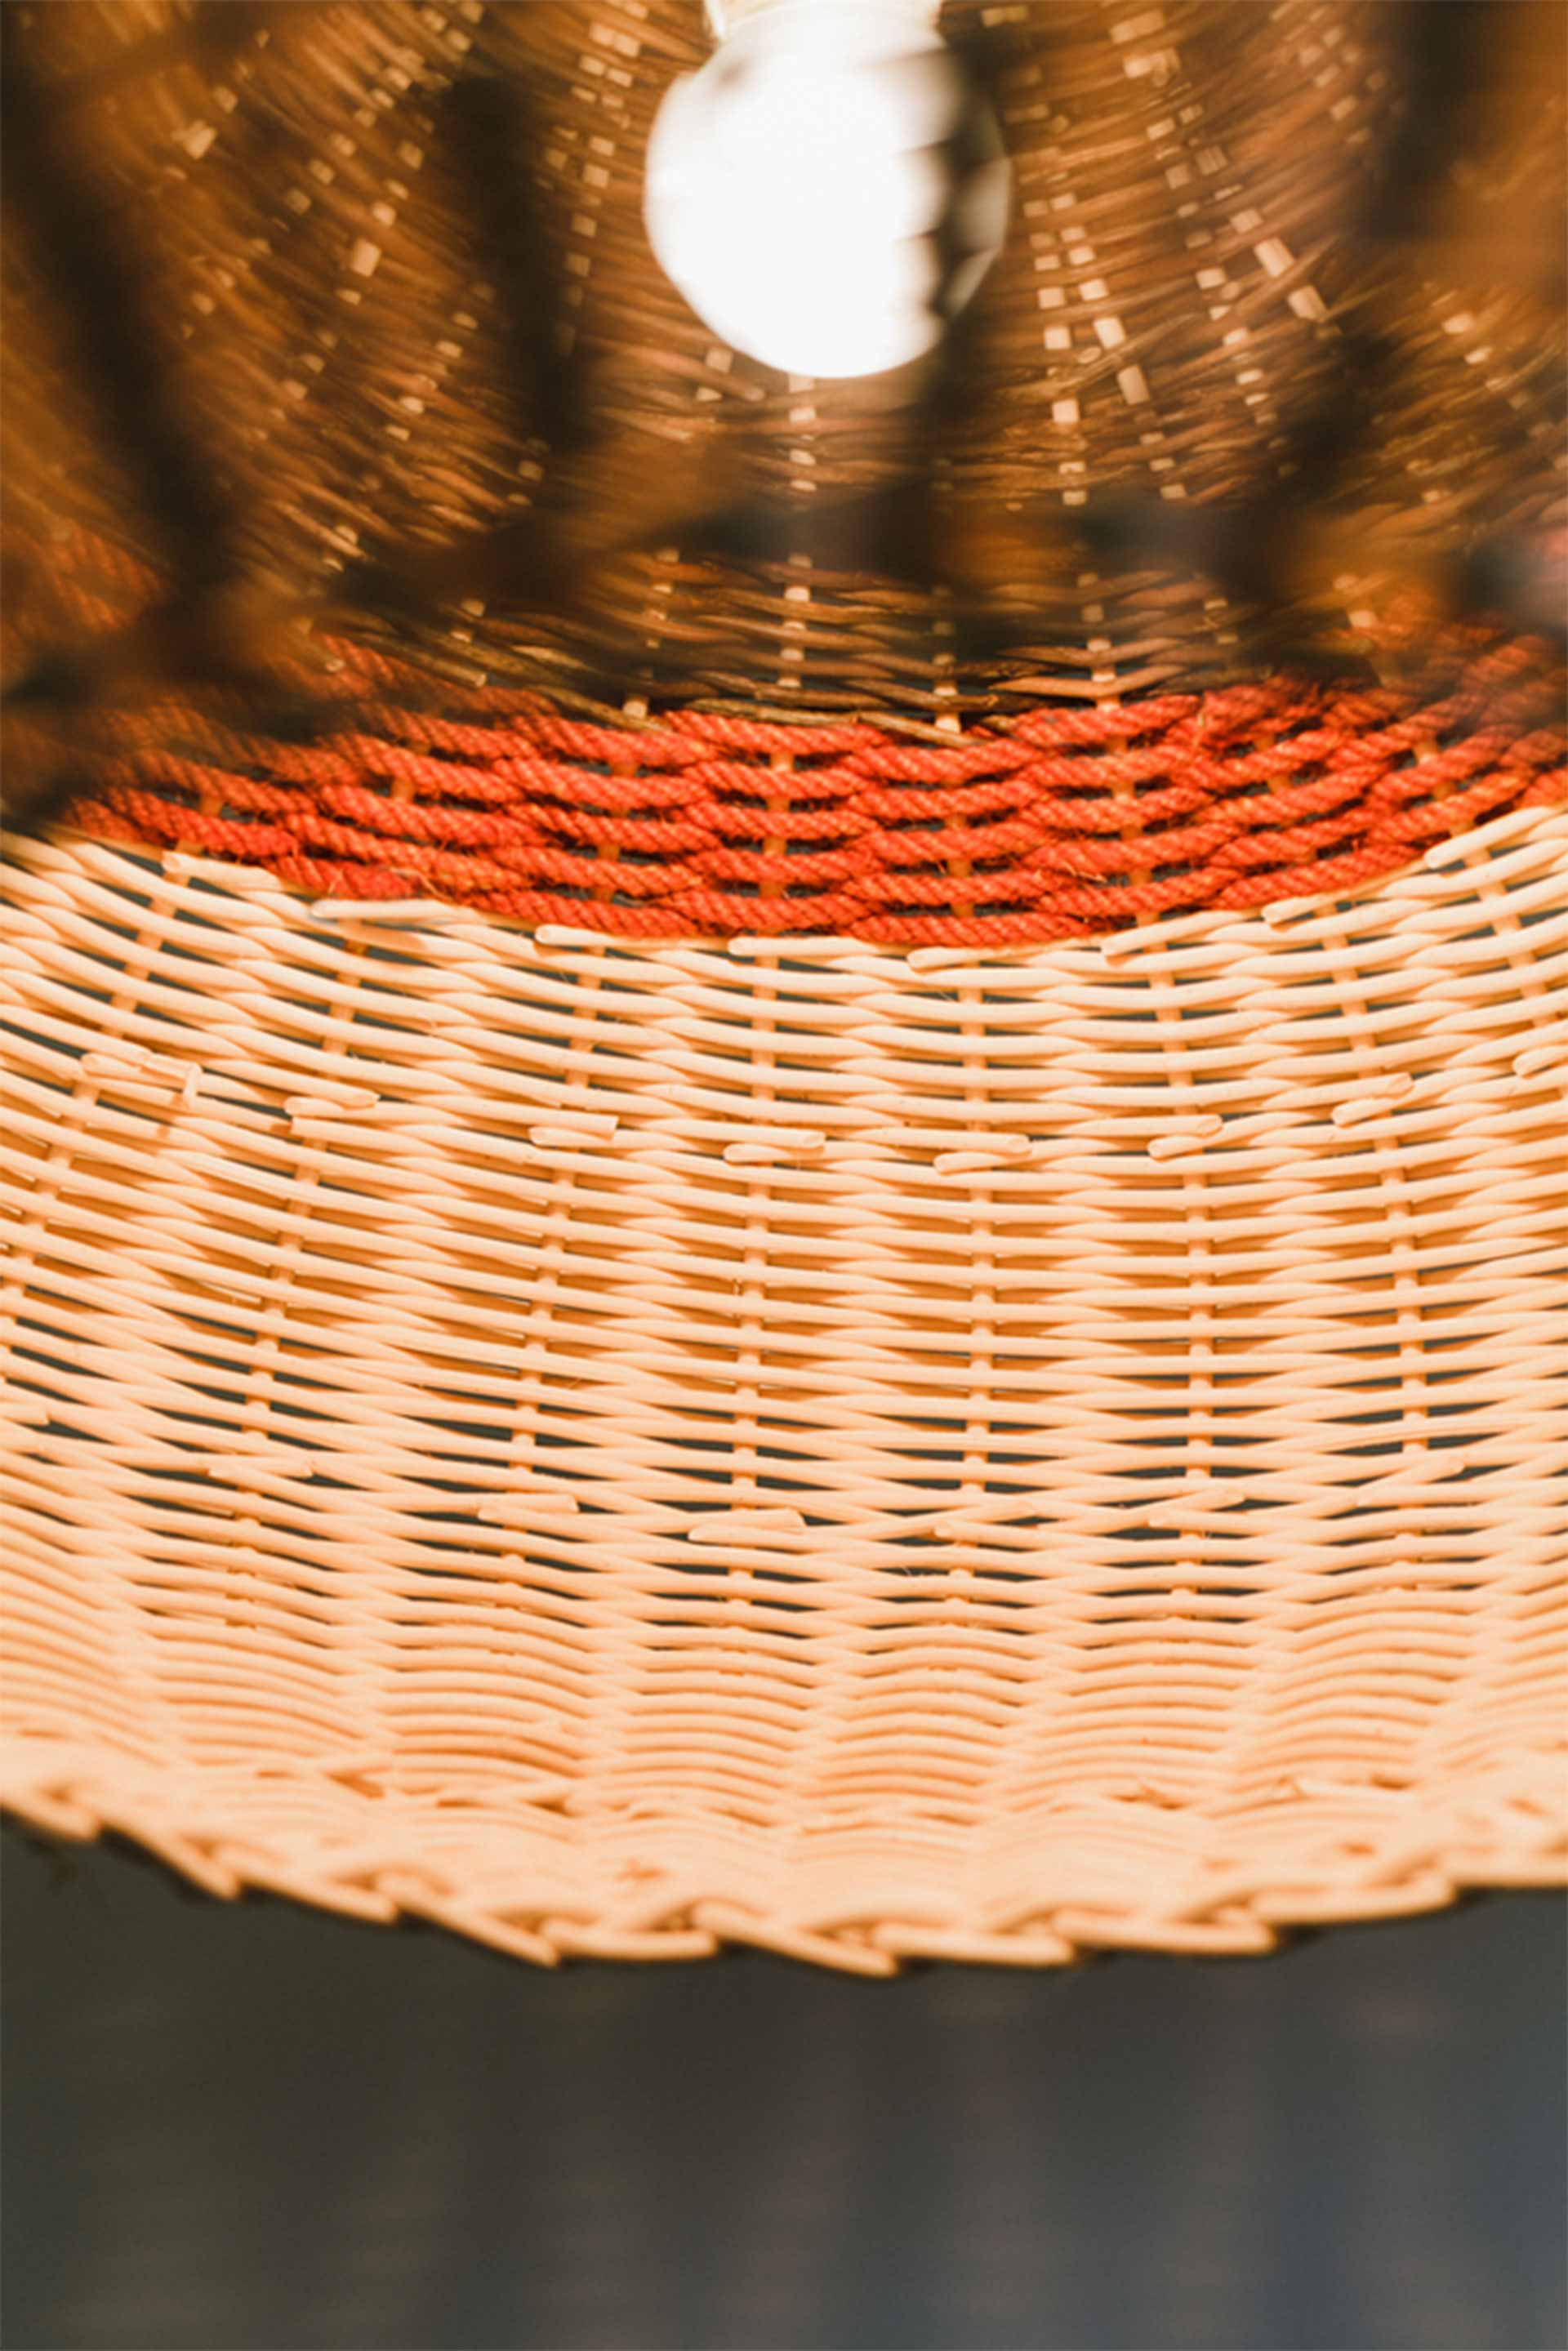 Internal detail of wicker light designed by Boex